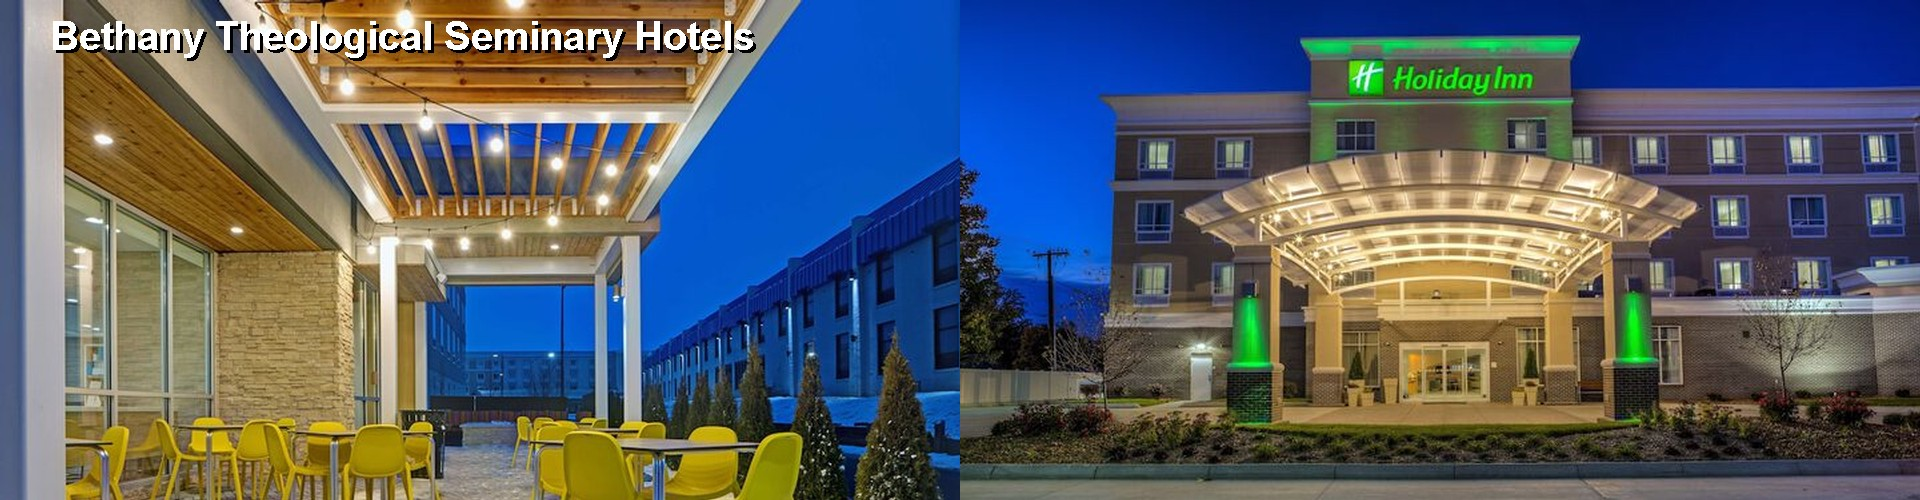 5 Best Hotels near Bethany Theological Seminary